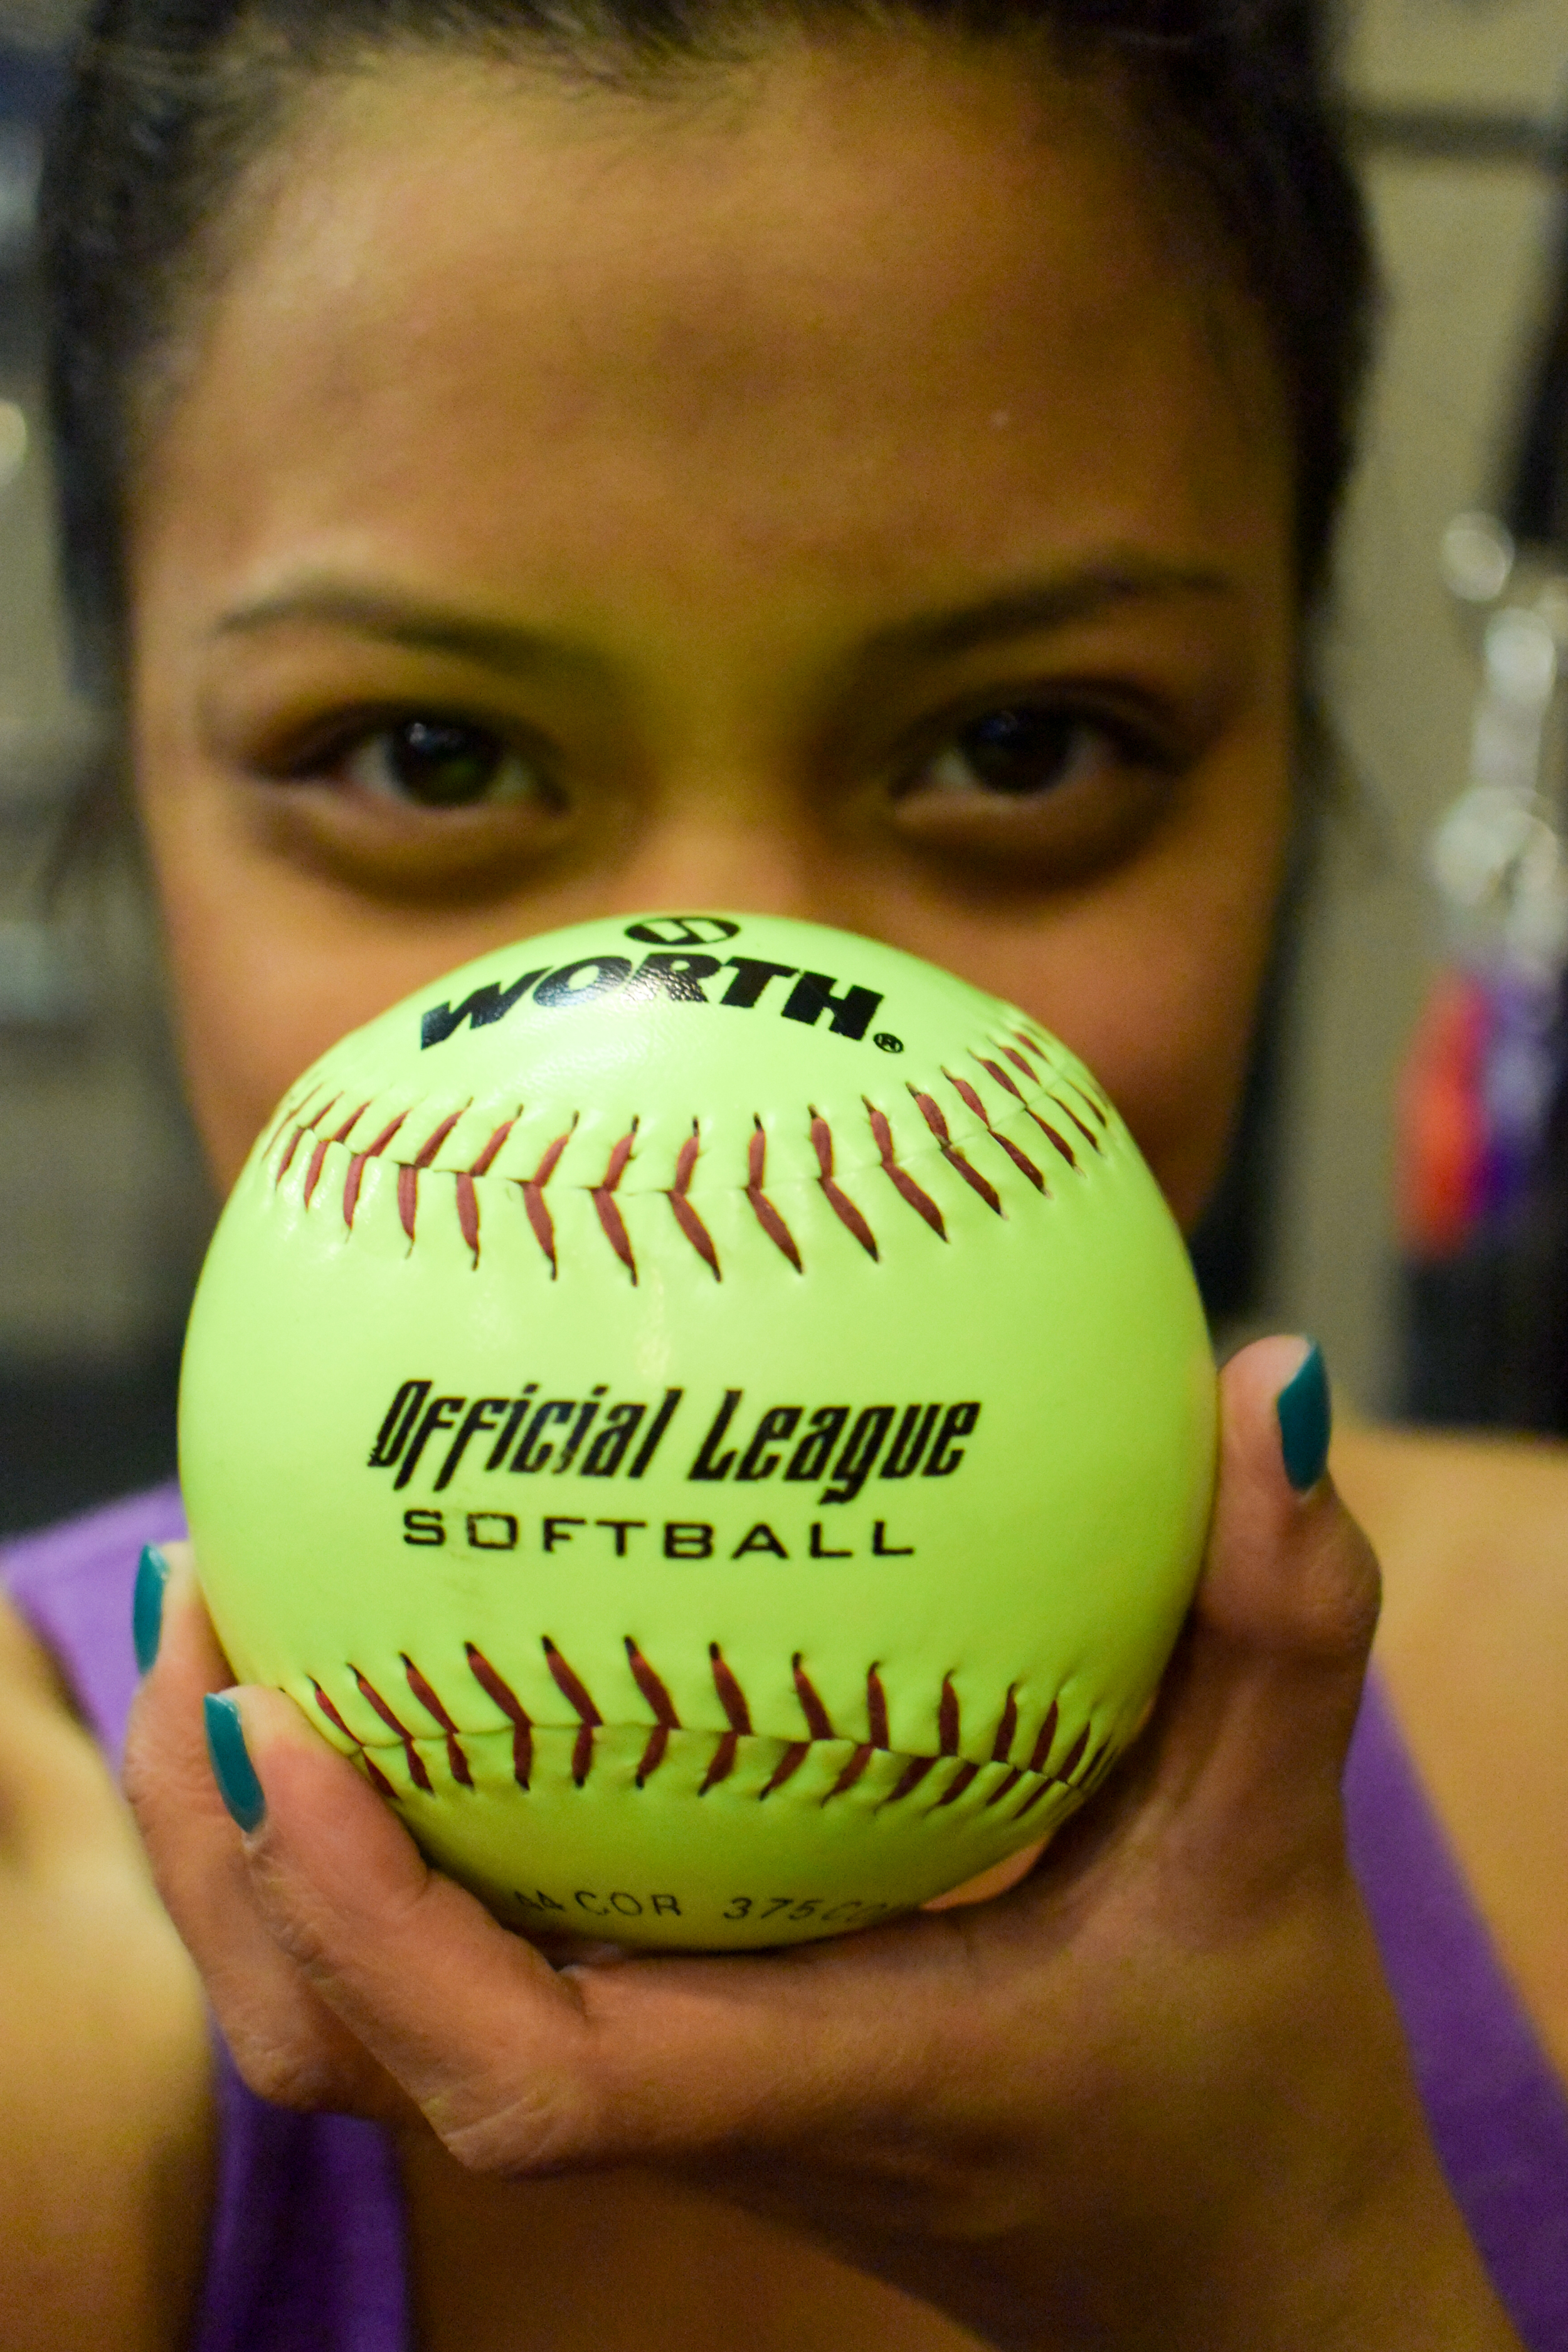 A softball or lacrosse ball may work in place of a roller to help soften up tight muscles. Saturday at 10AM, find some knots to unglue during the SV RESTORE session!